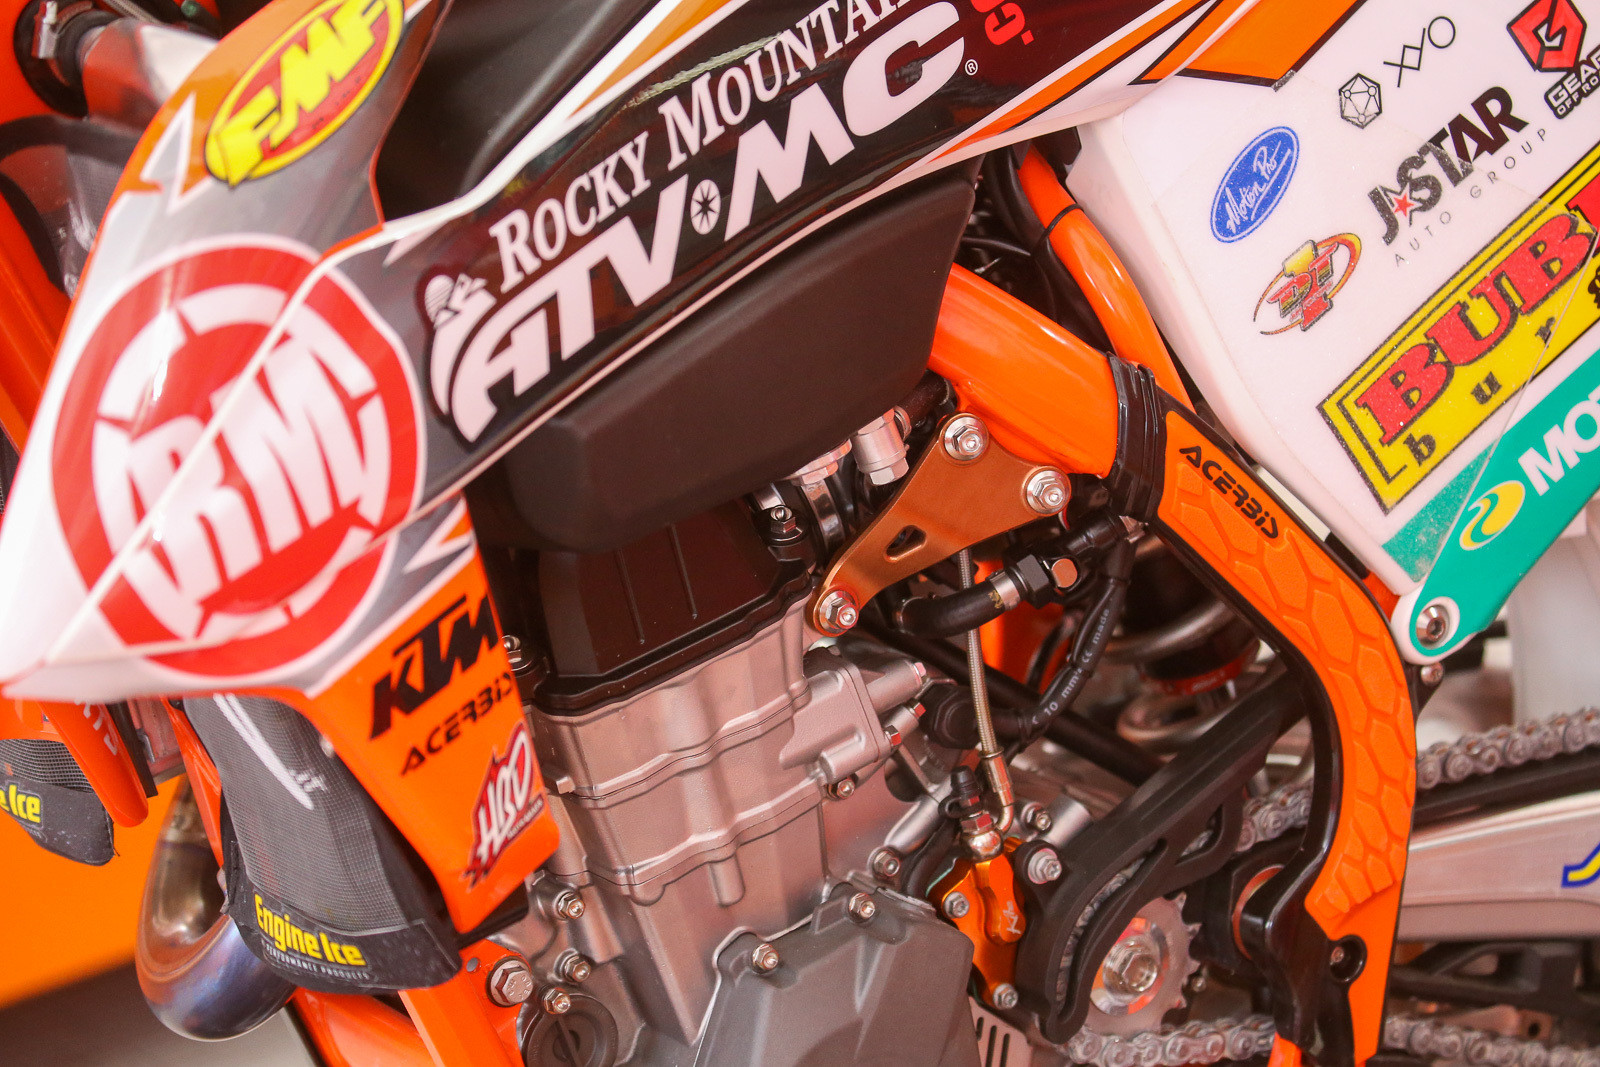 This year maybe more than any time in recent memory, we've seen people experimenting with different motor mounts. We spotted these new bits on the Rocky Mountain ATV-MC/KTM/WPS bikes. Did it have anything to do with Blake Baggett's first moto win? Who knows? But they do look good on there.